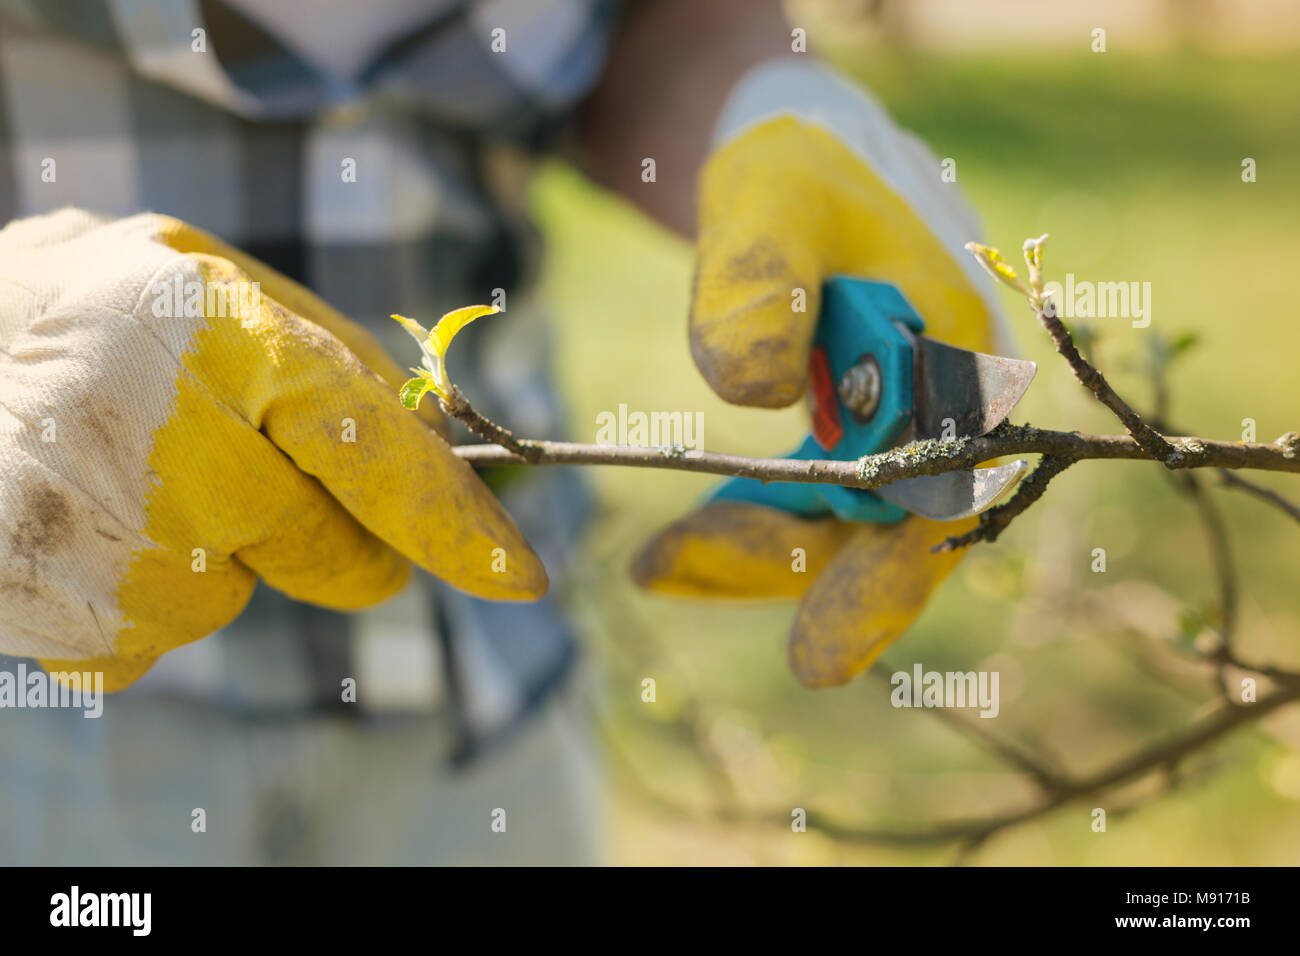 Close up of a mna pruning a tree in spring - Stock Image